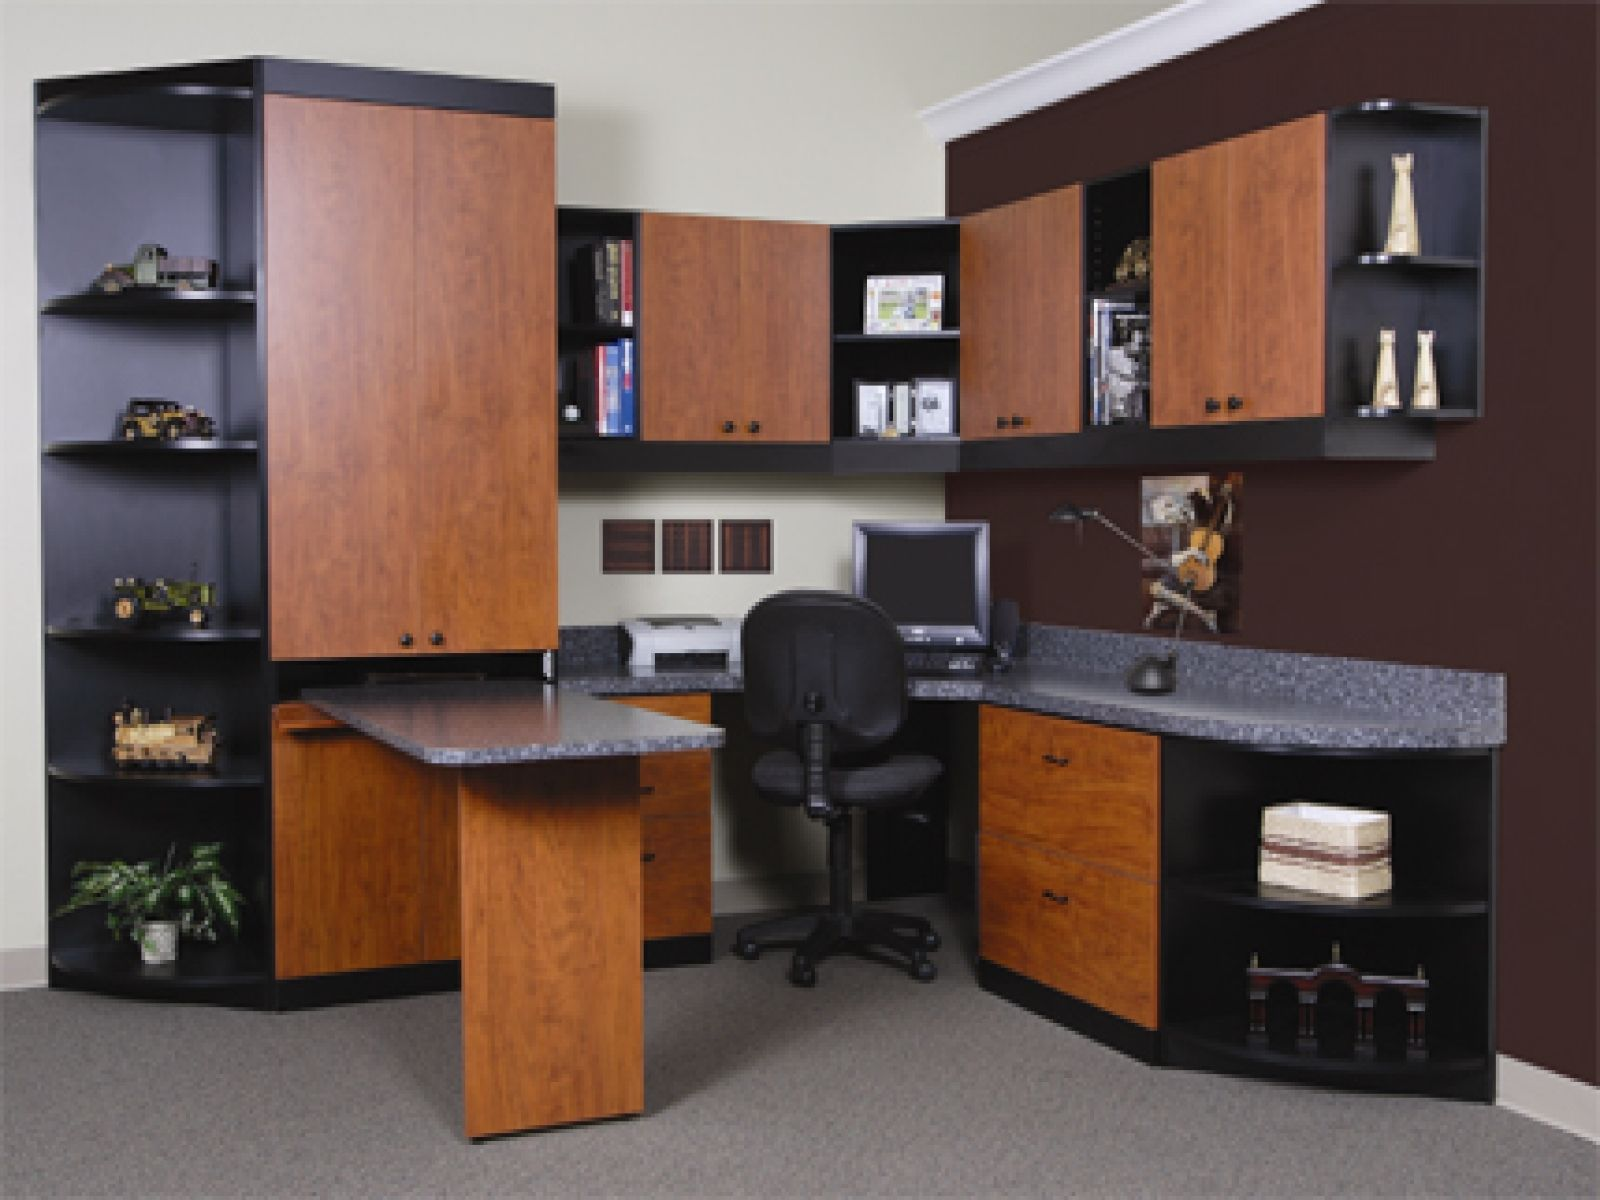 Office Wall Cabinets With Modern Small Display Ideas